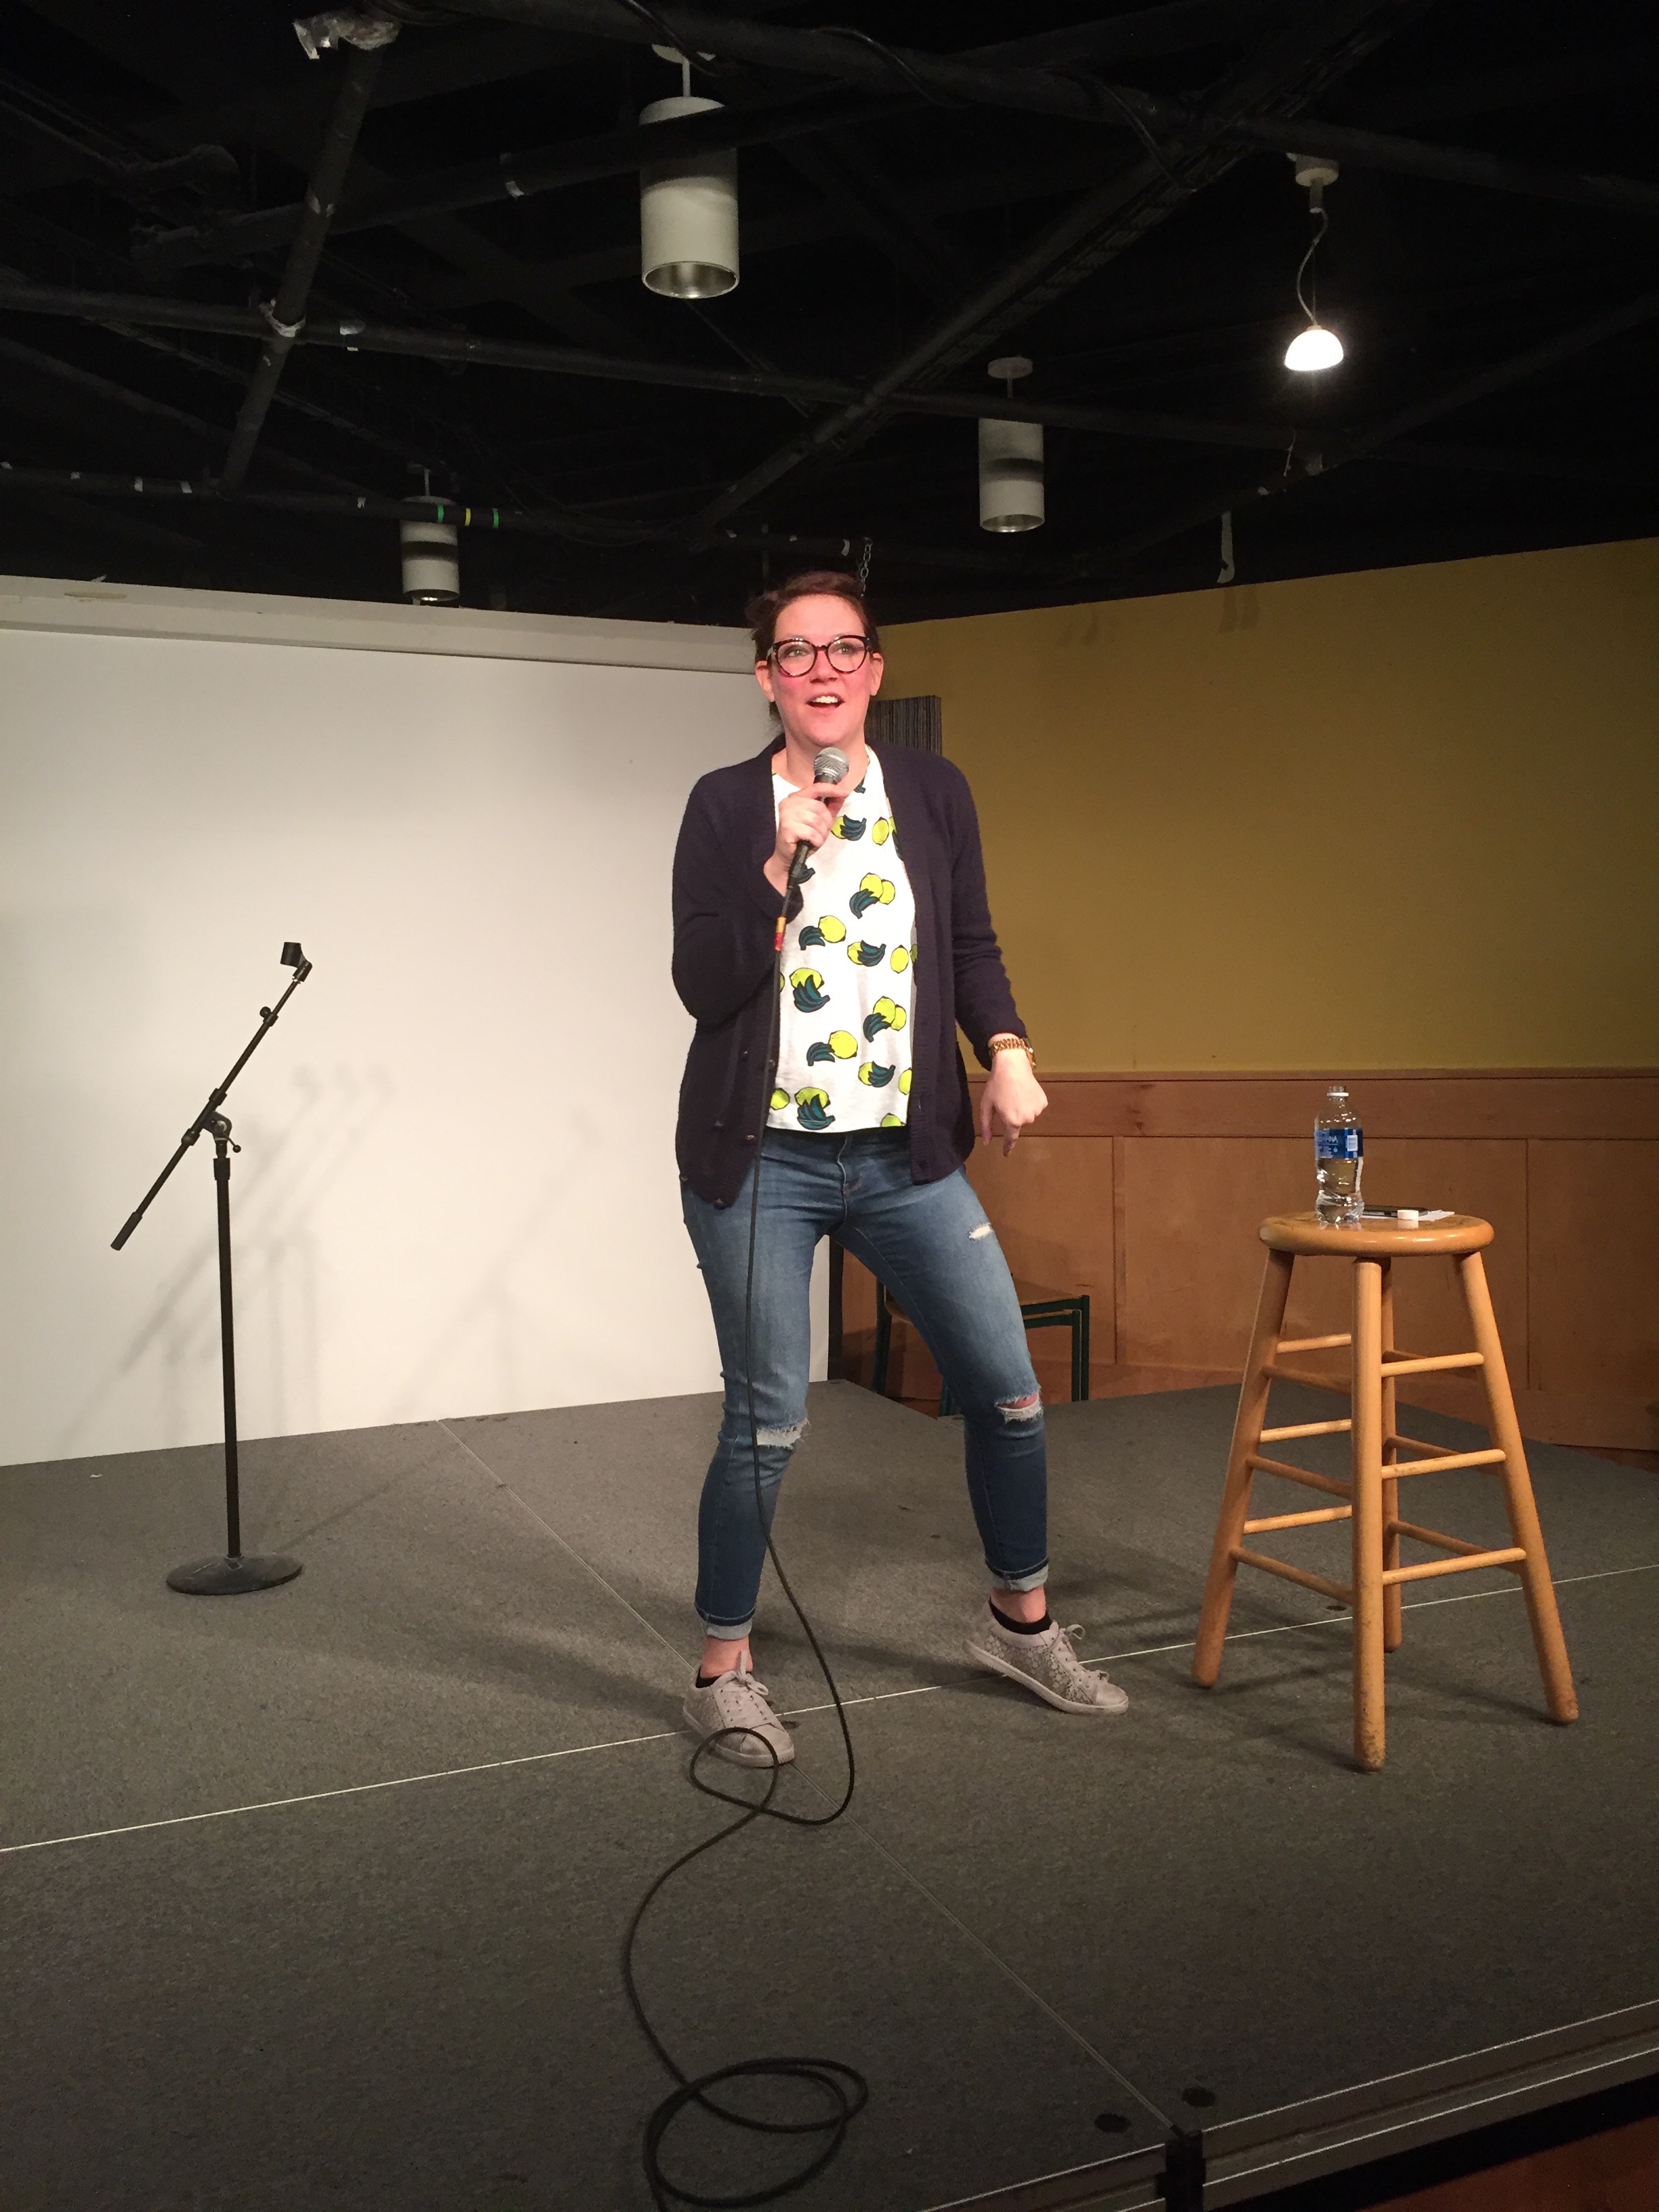 Caption: Following the election, L.A.-based comic Sara Schaefer travels to colleges across the U.S., where she's trying out some politically charged material. Here she is performing at the Rensselaer Polytechnic Institute in Troy, NY, Credit: Rohan Venkatesh